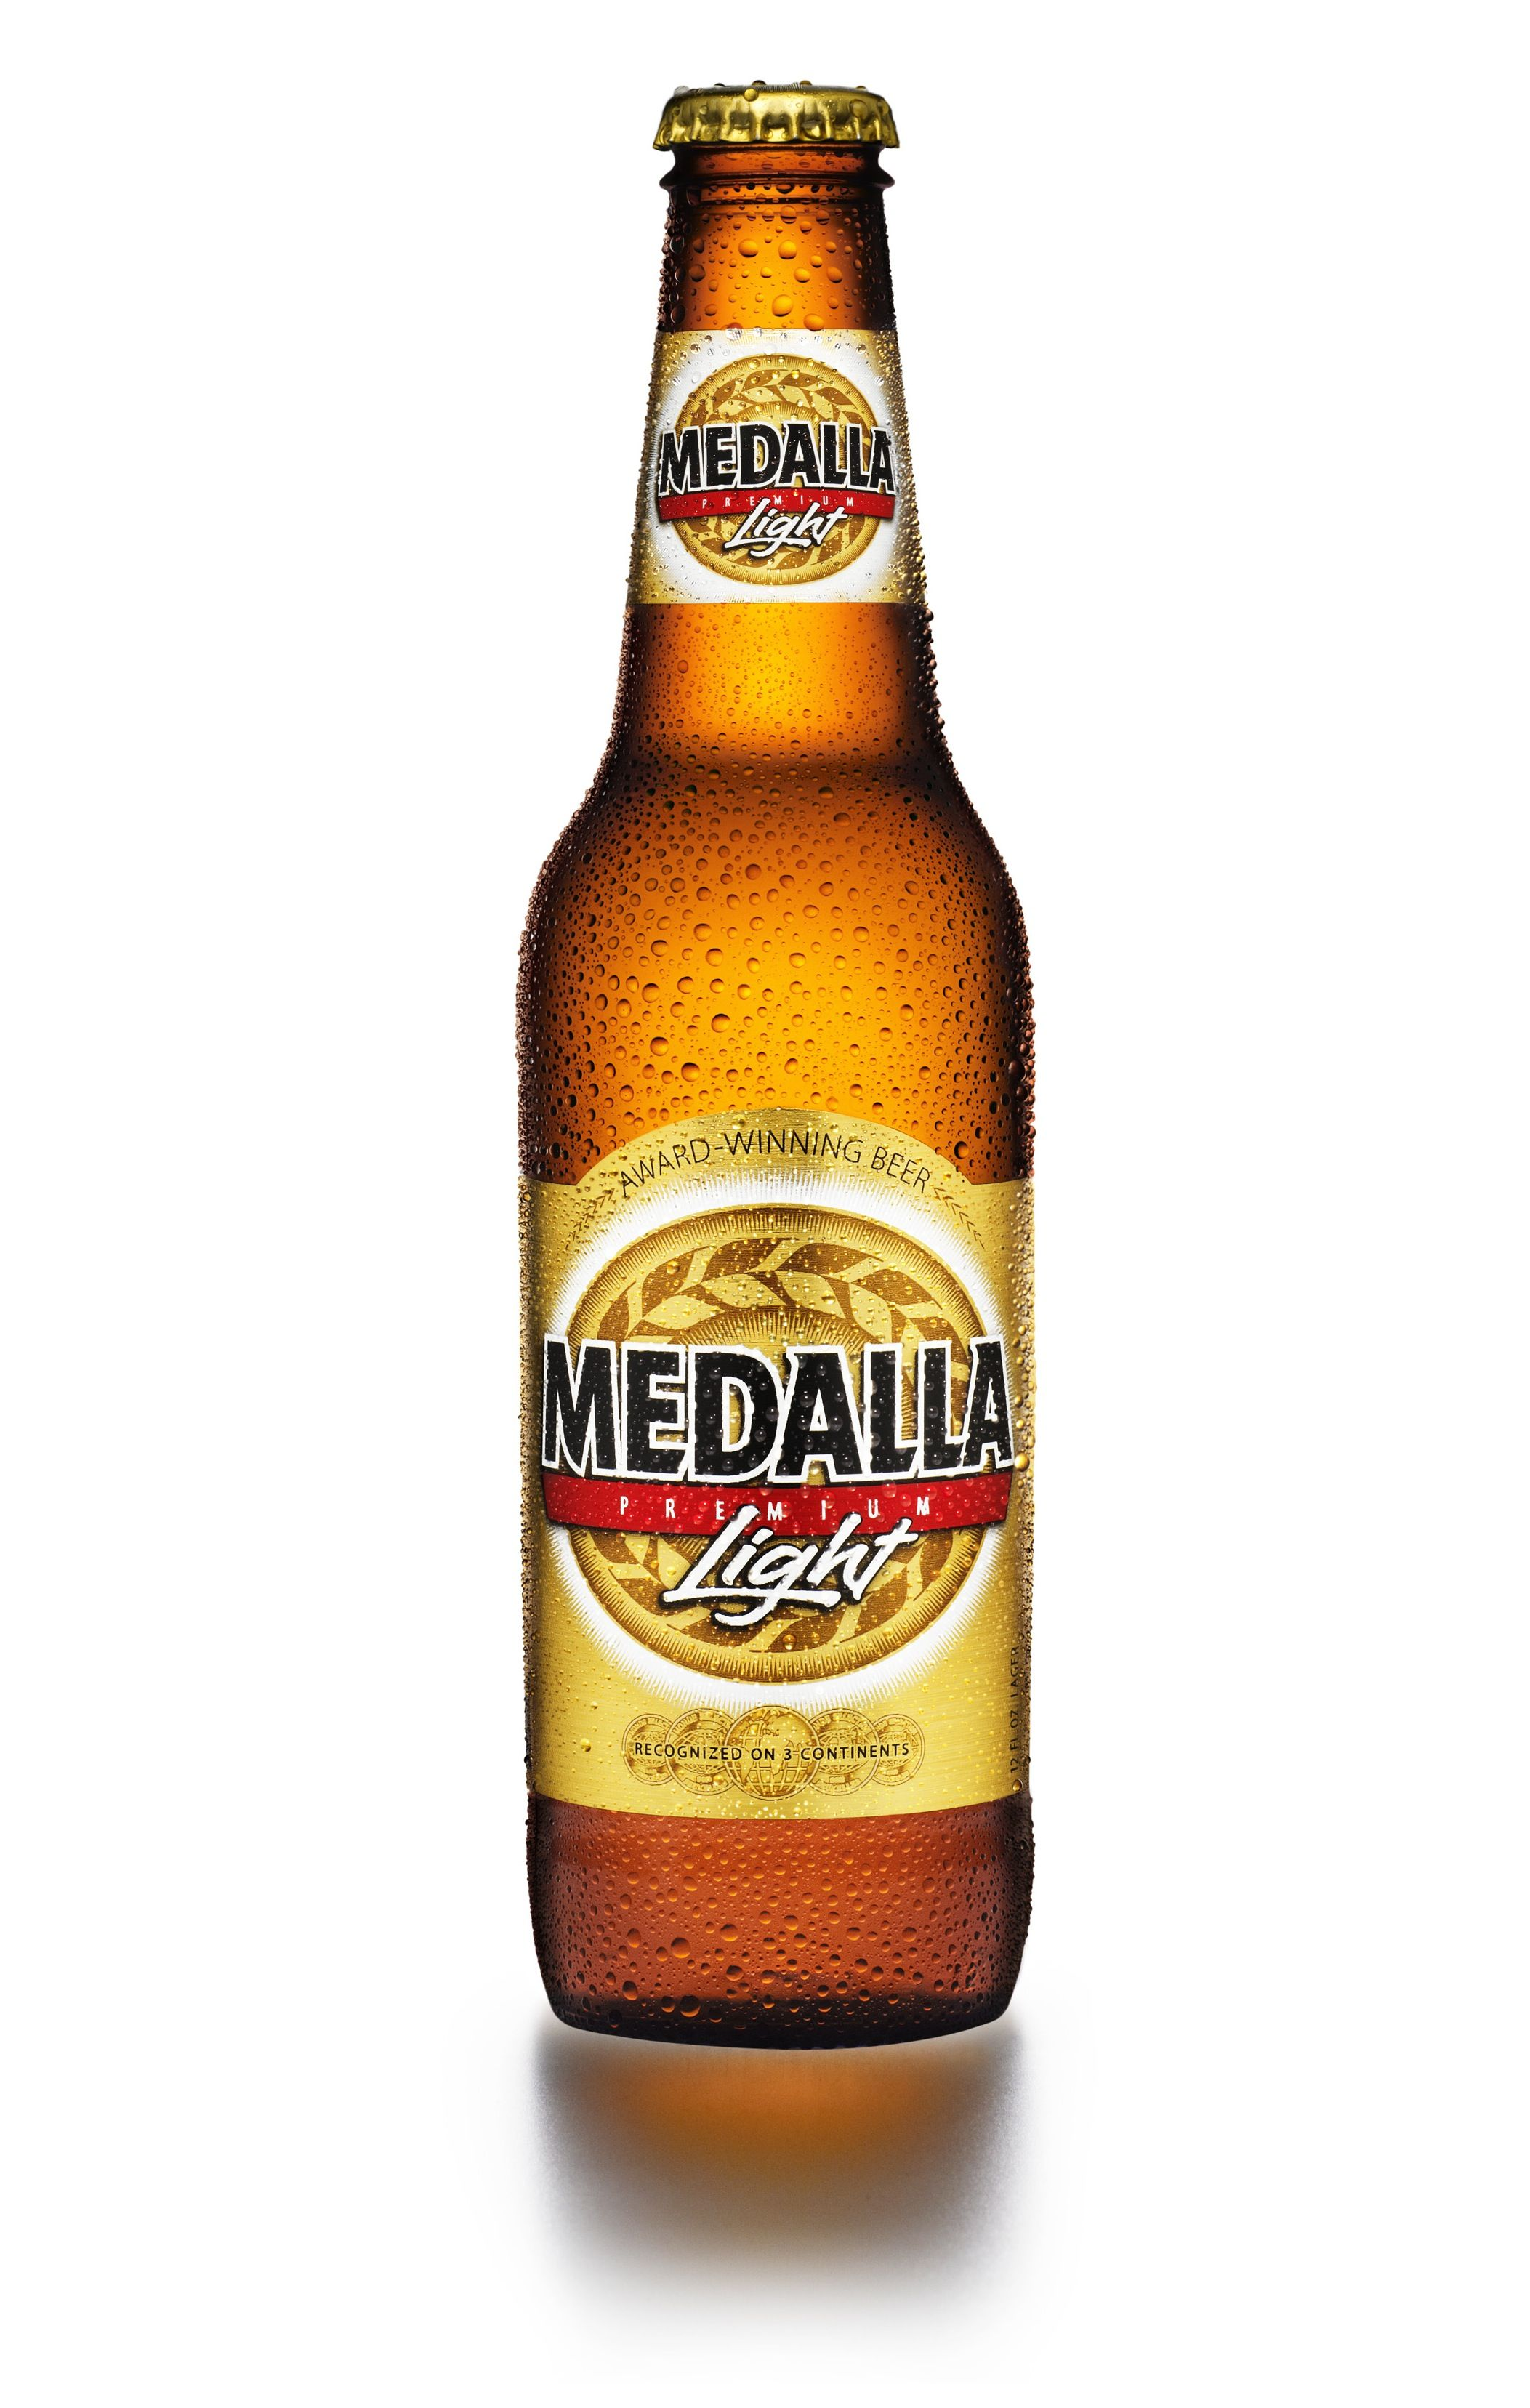 medalla - Puerto Rico's beer. Years ago the ad for this ...